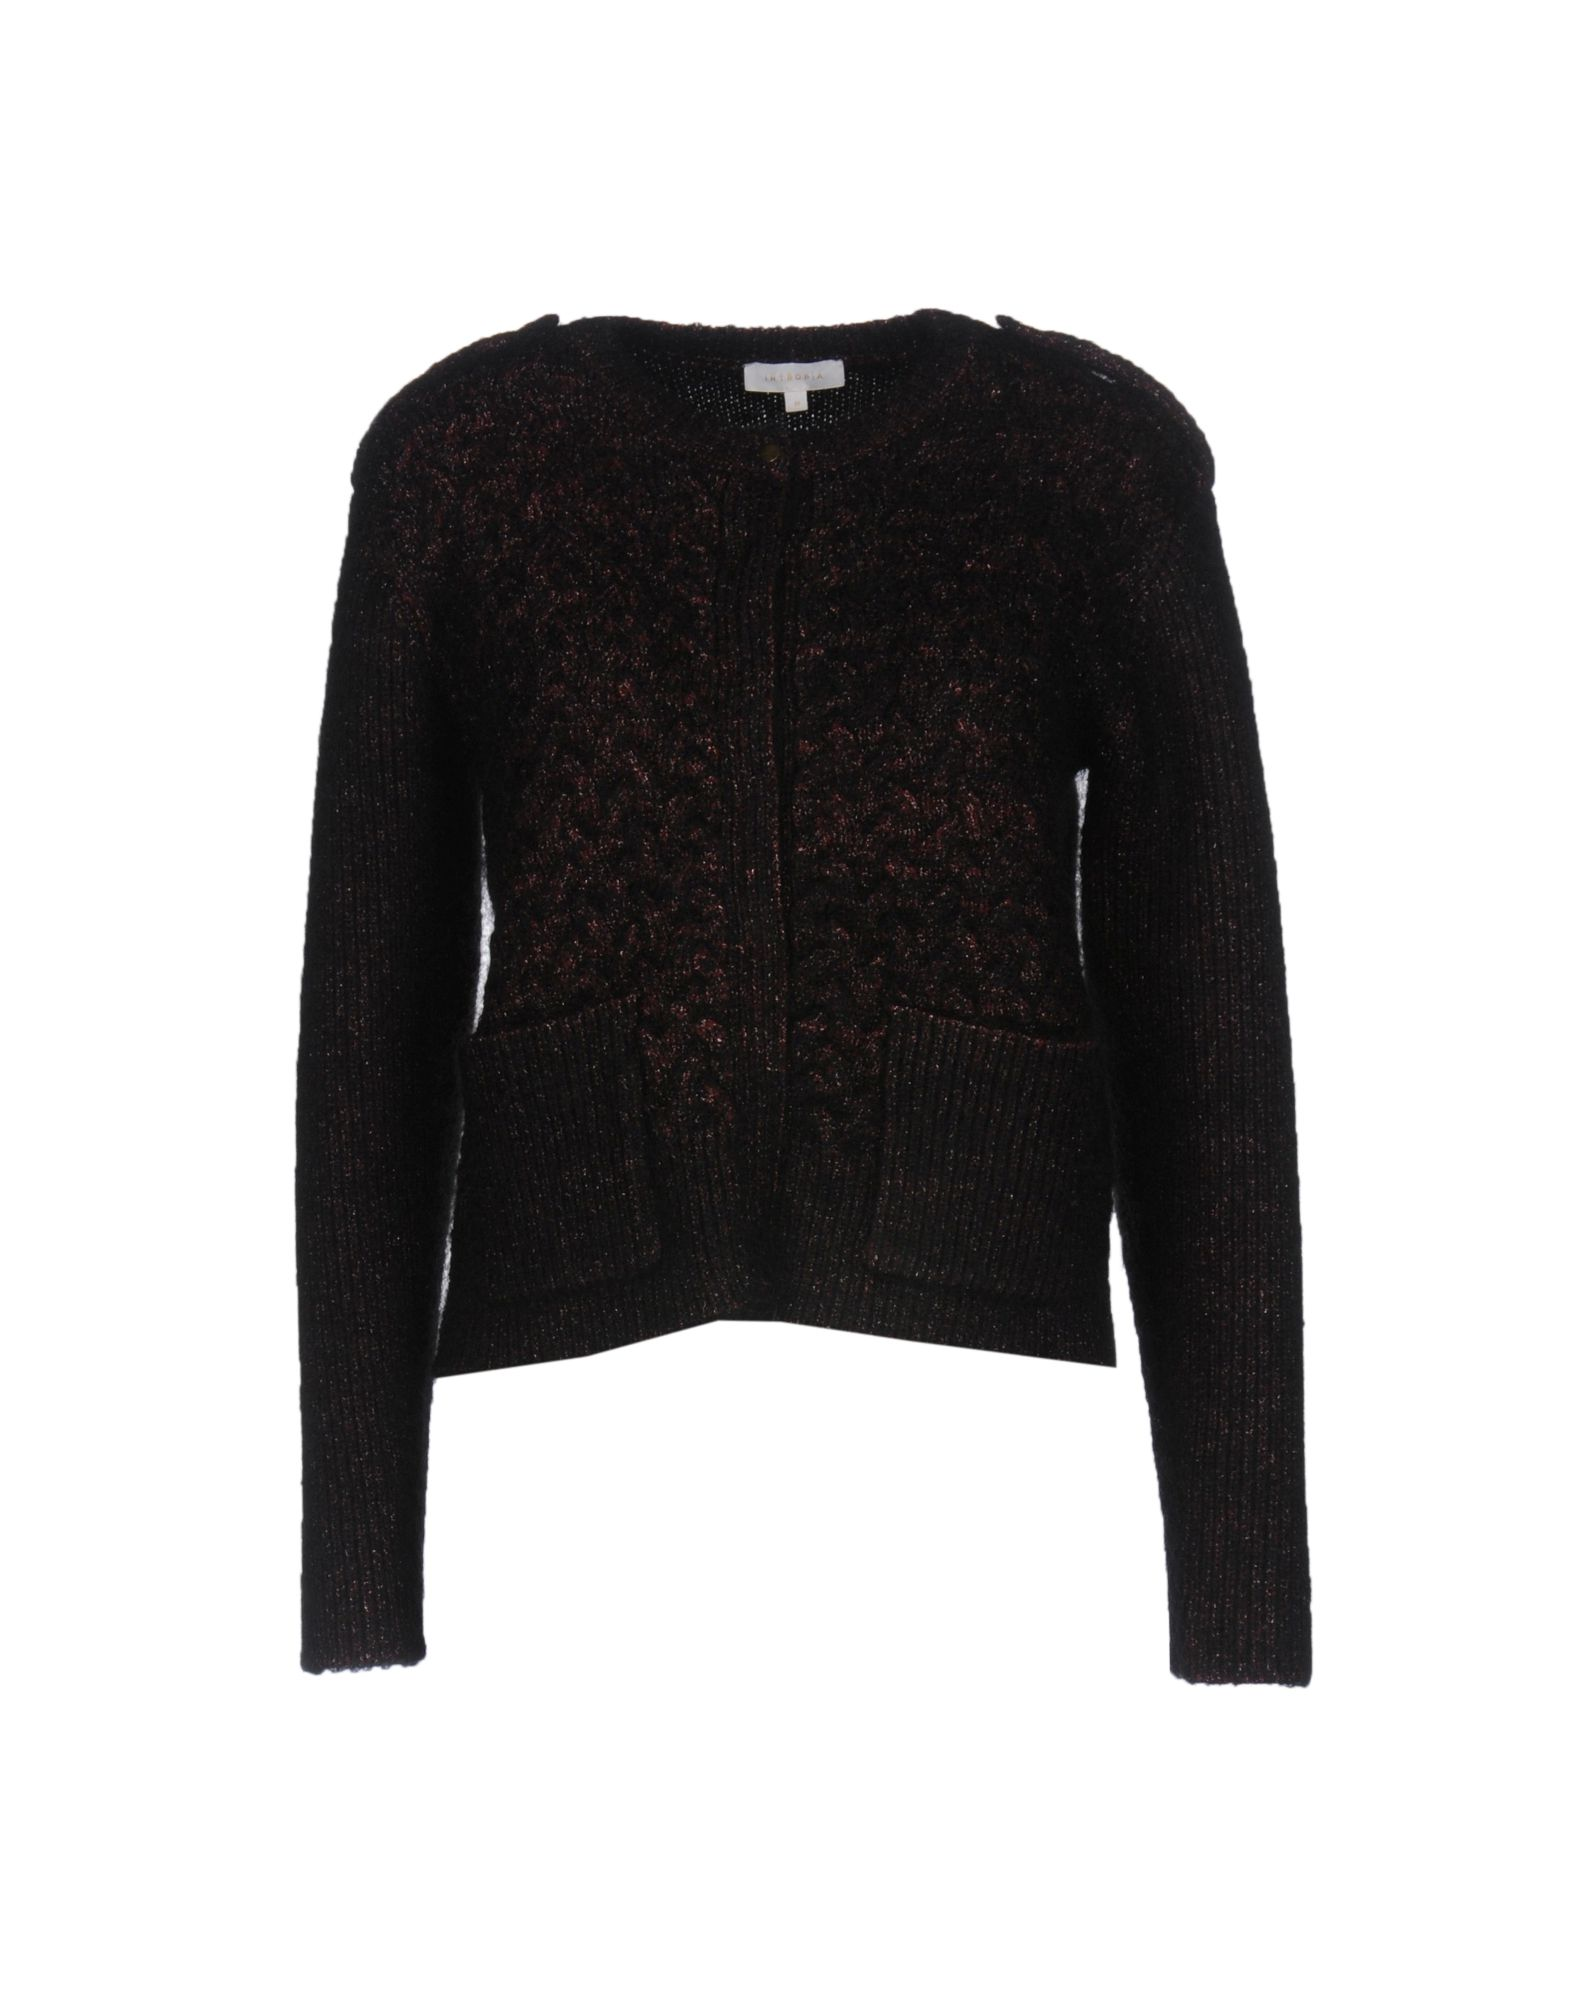 Cardigan Intropia Donna - Acquista online su y4pem